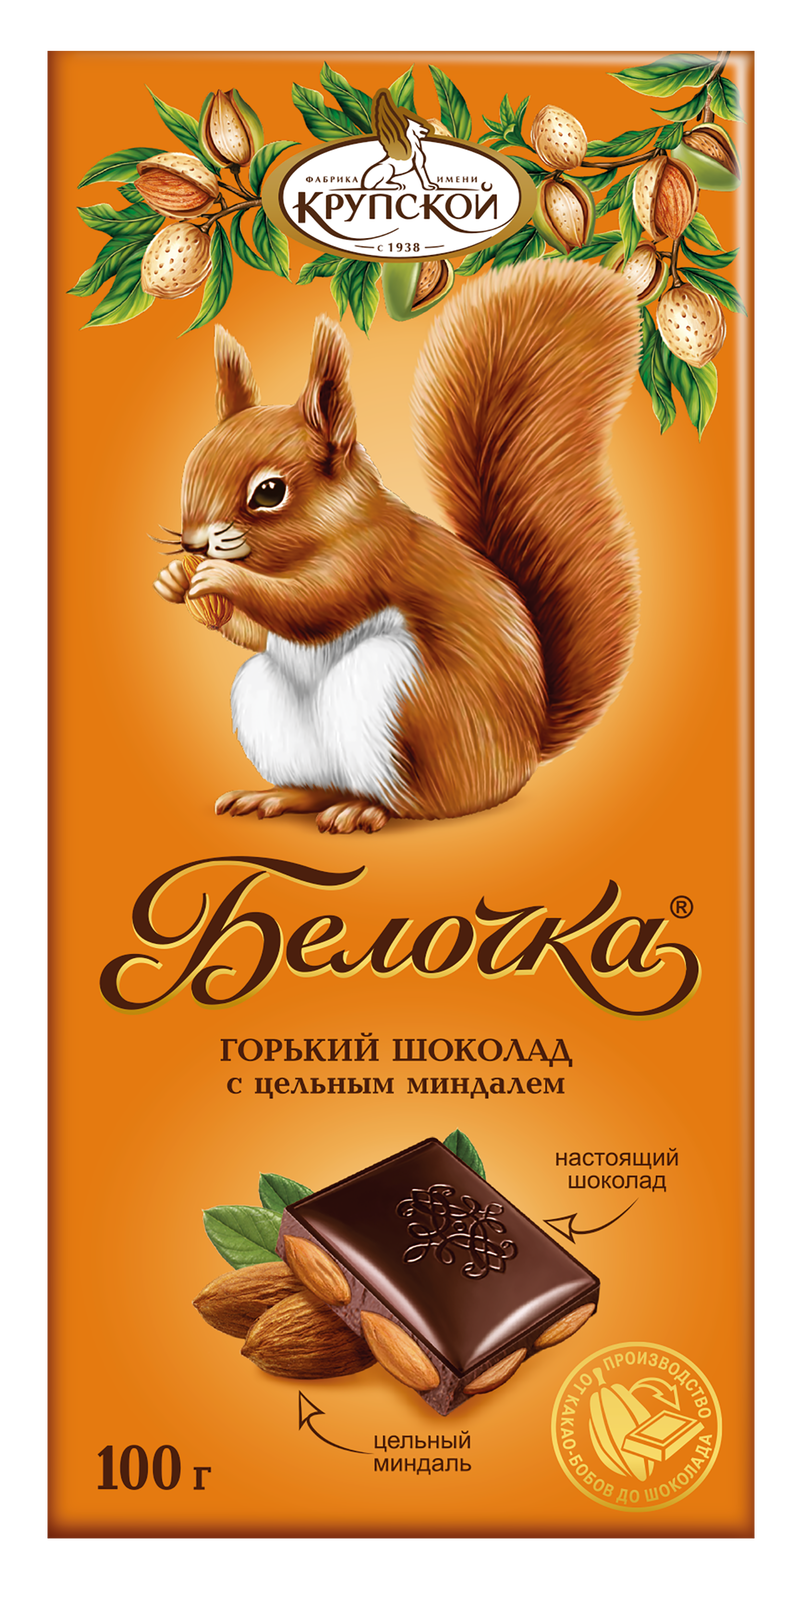 «Belochka» with whole almond